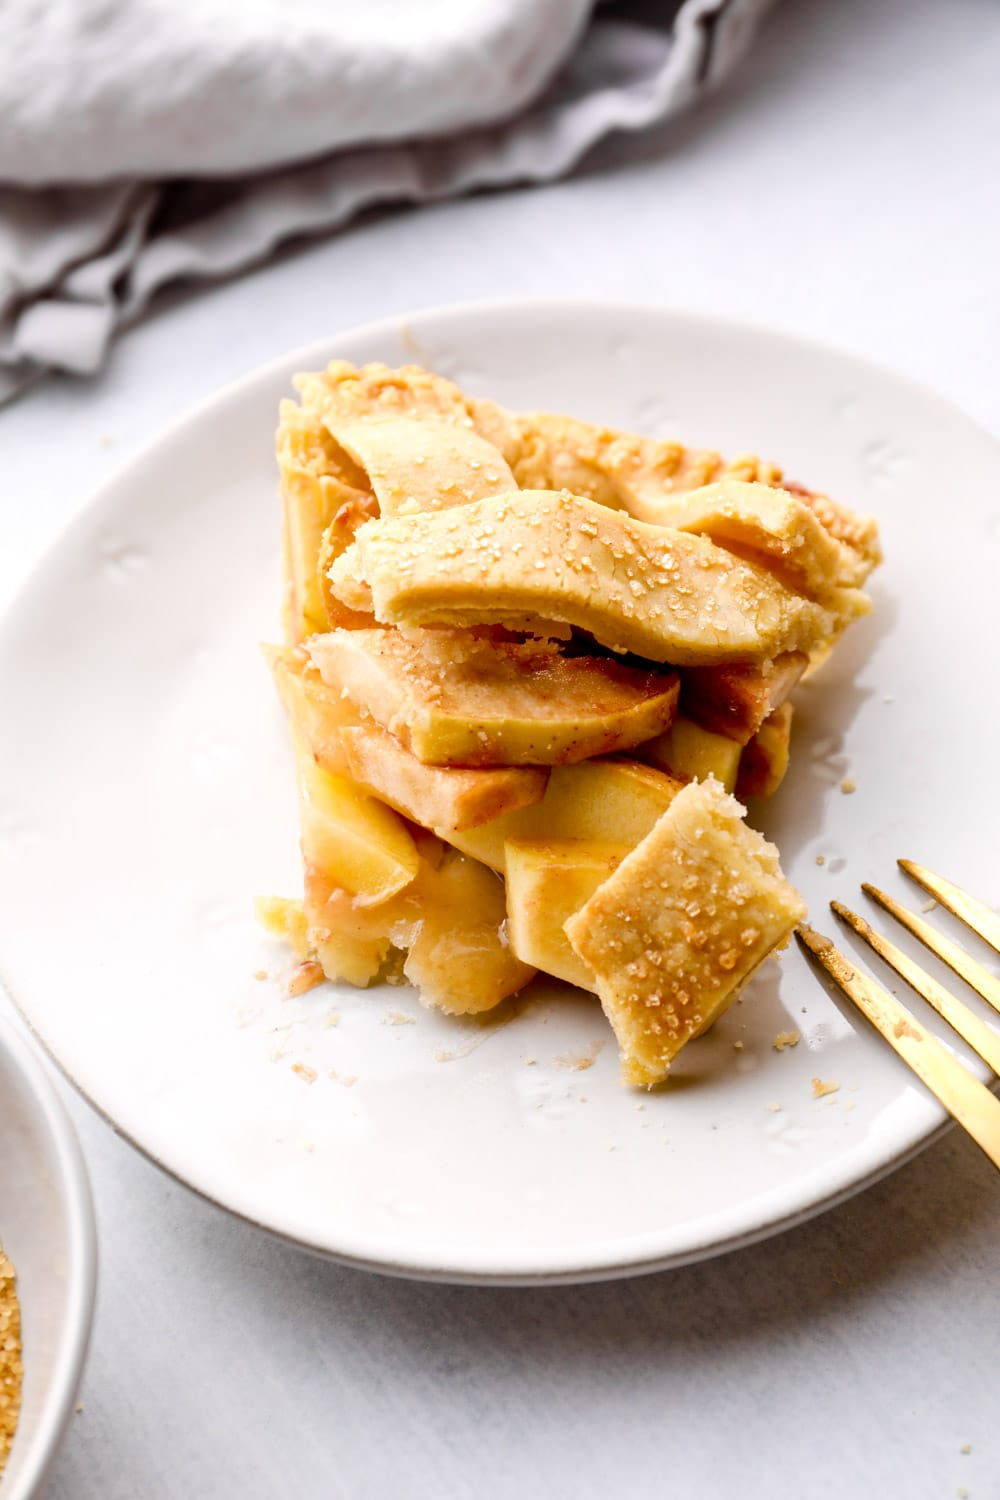 A bite out of a slice of Gluten Free Apple Pie.